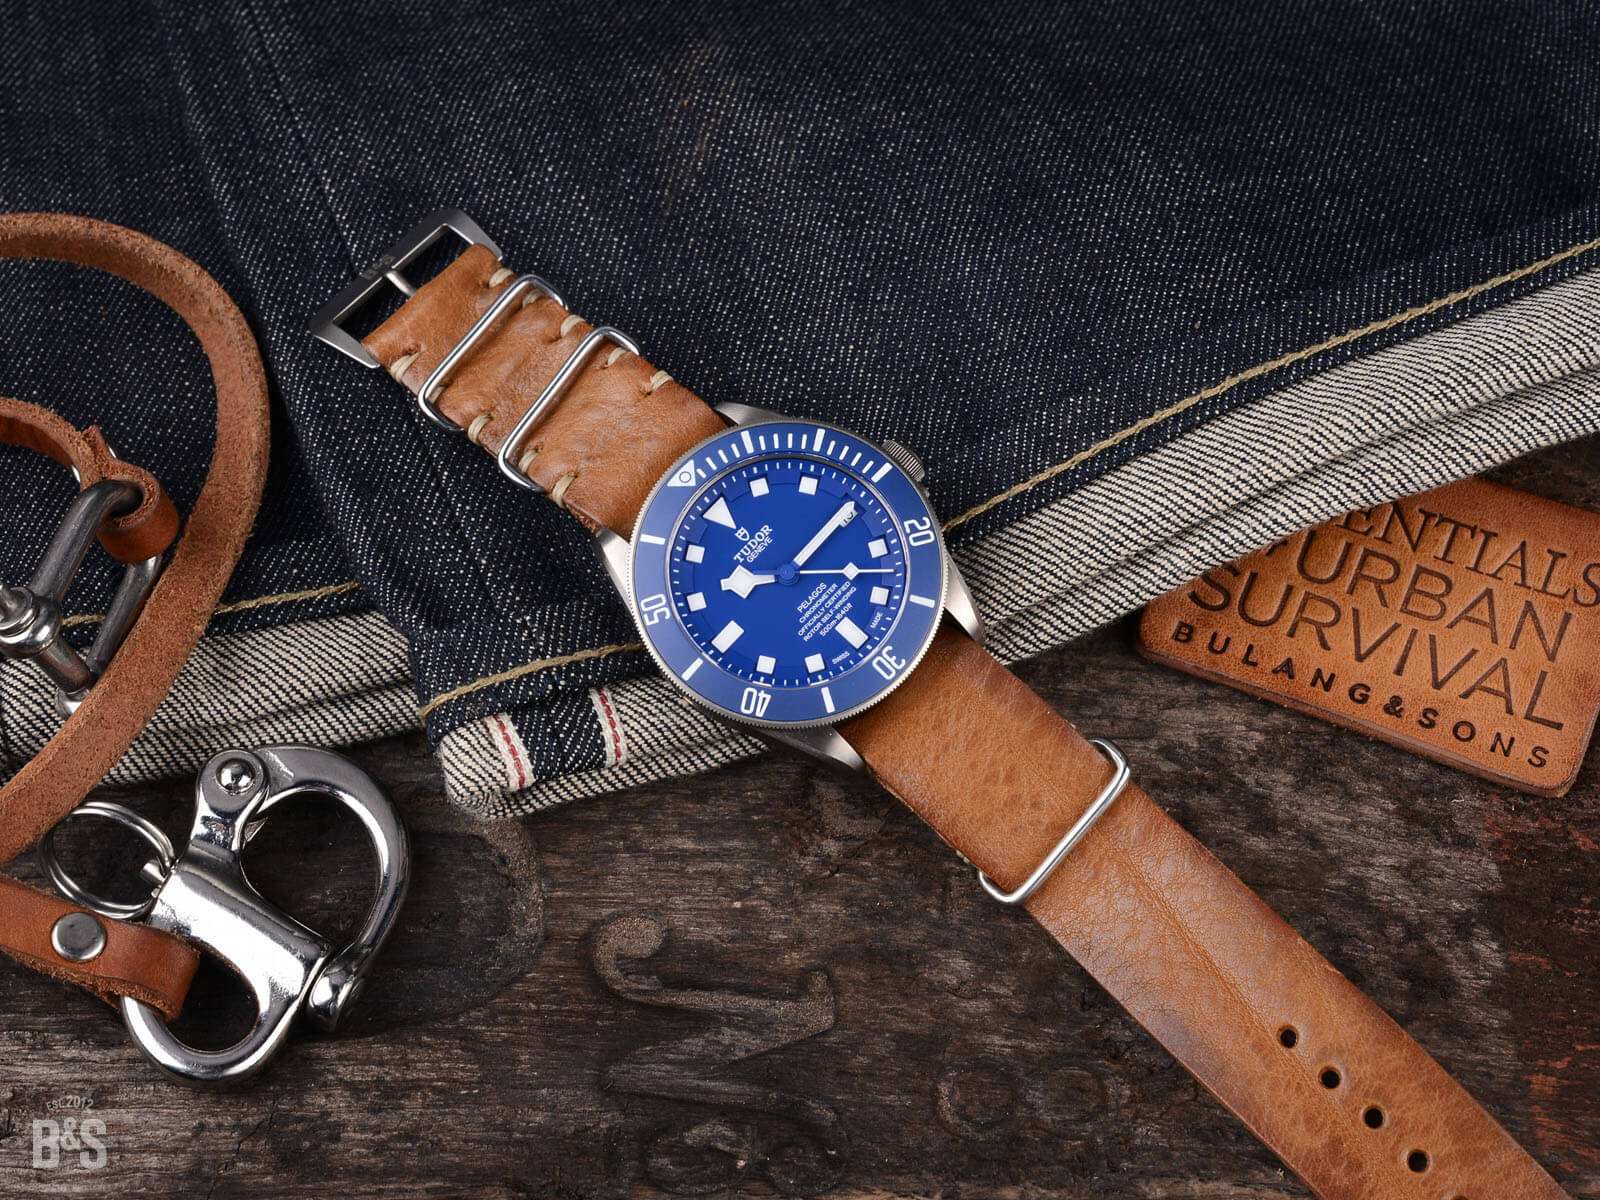 BS-SHoot-Tudor-Pelagos-69-kopie